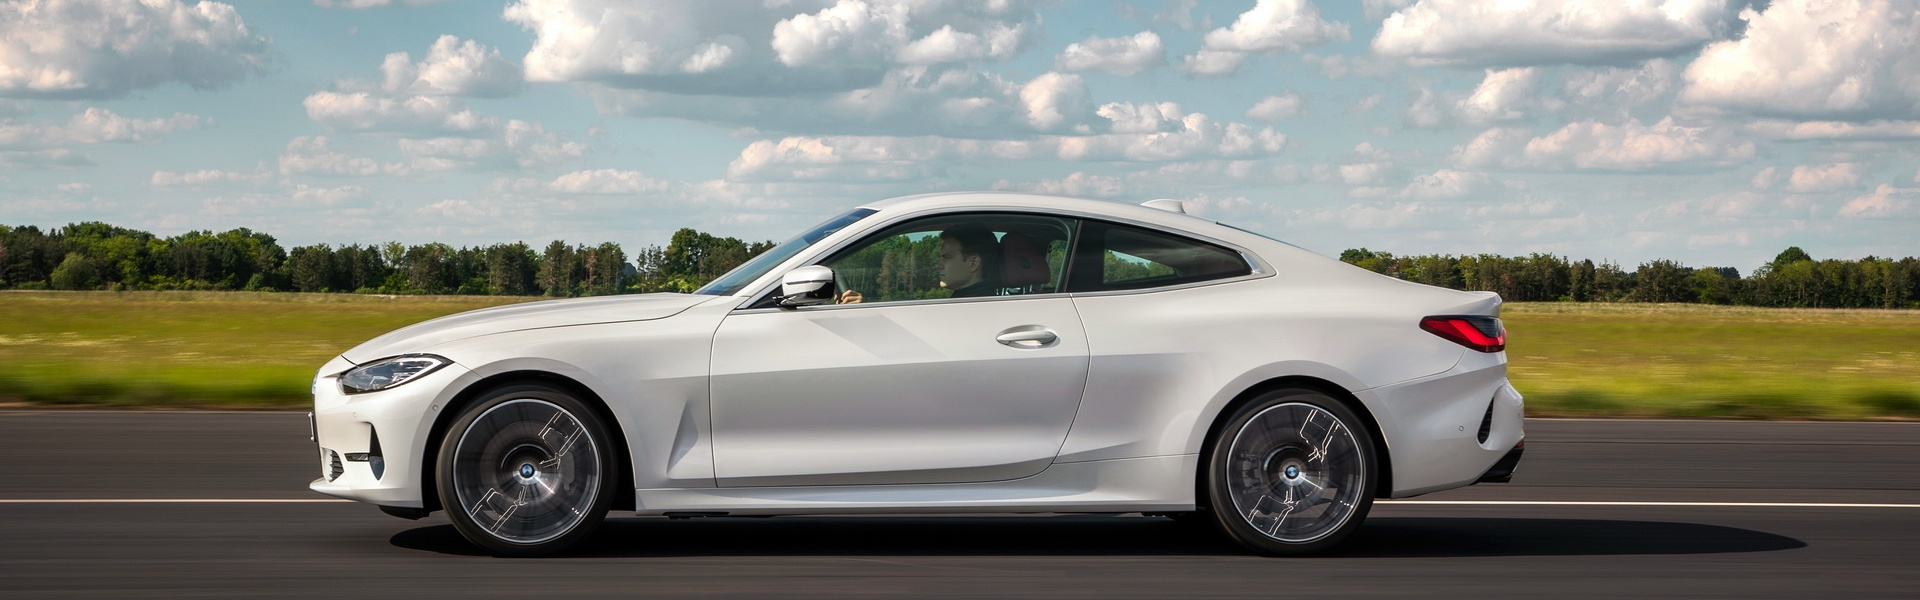 2021-BMW-4-Series-Coupe-77.jpg